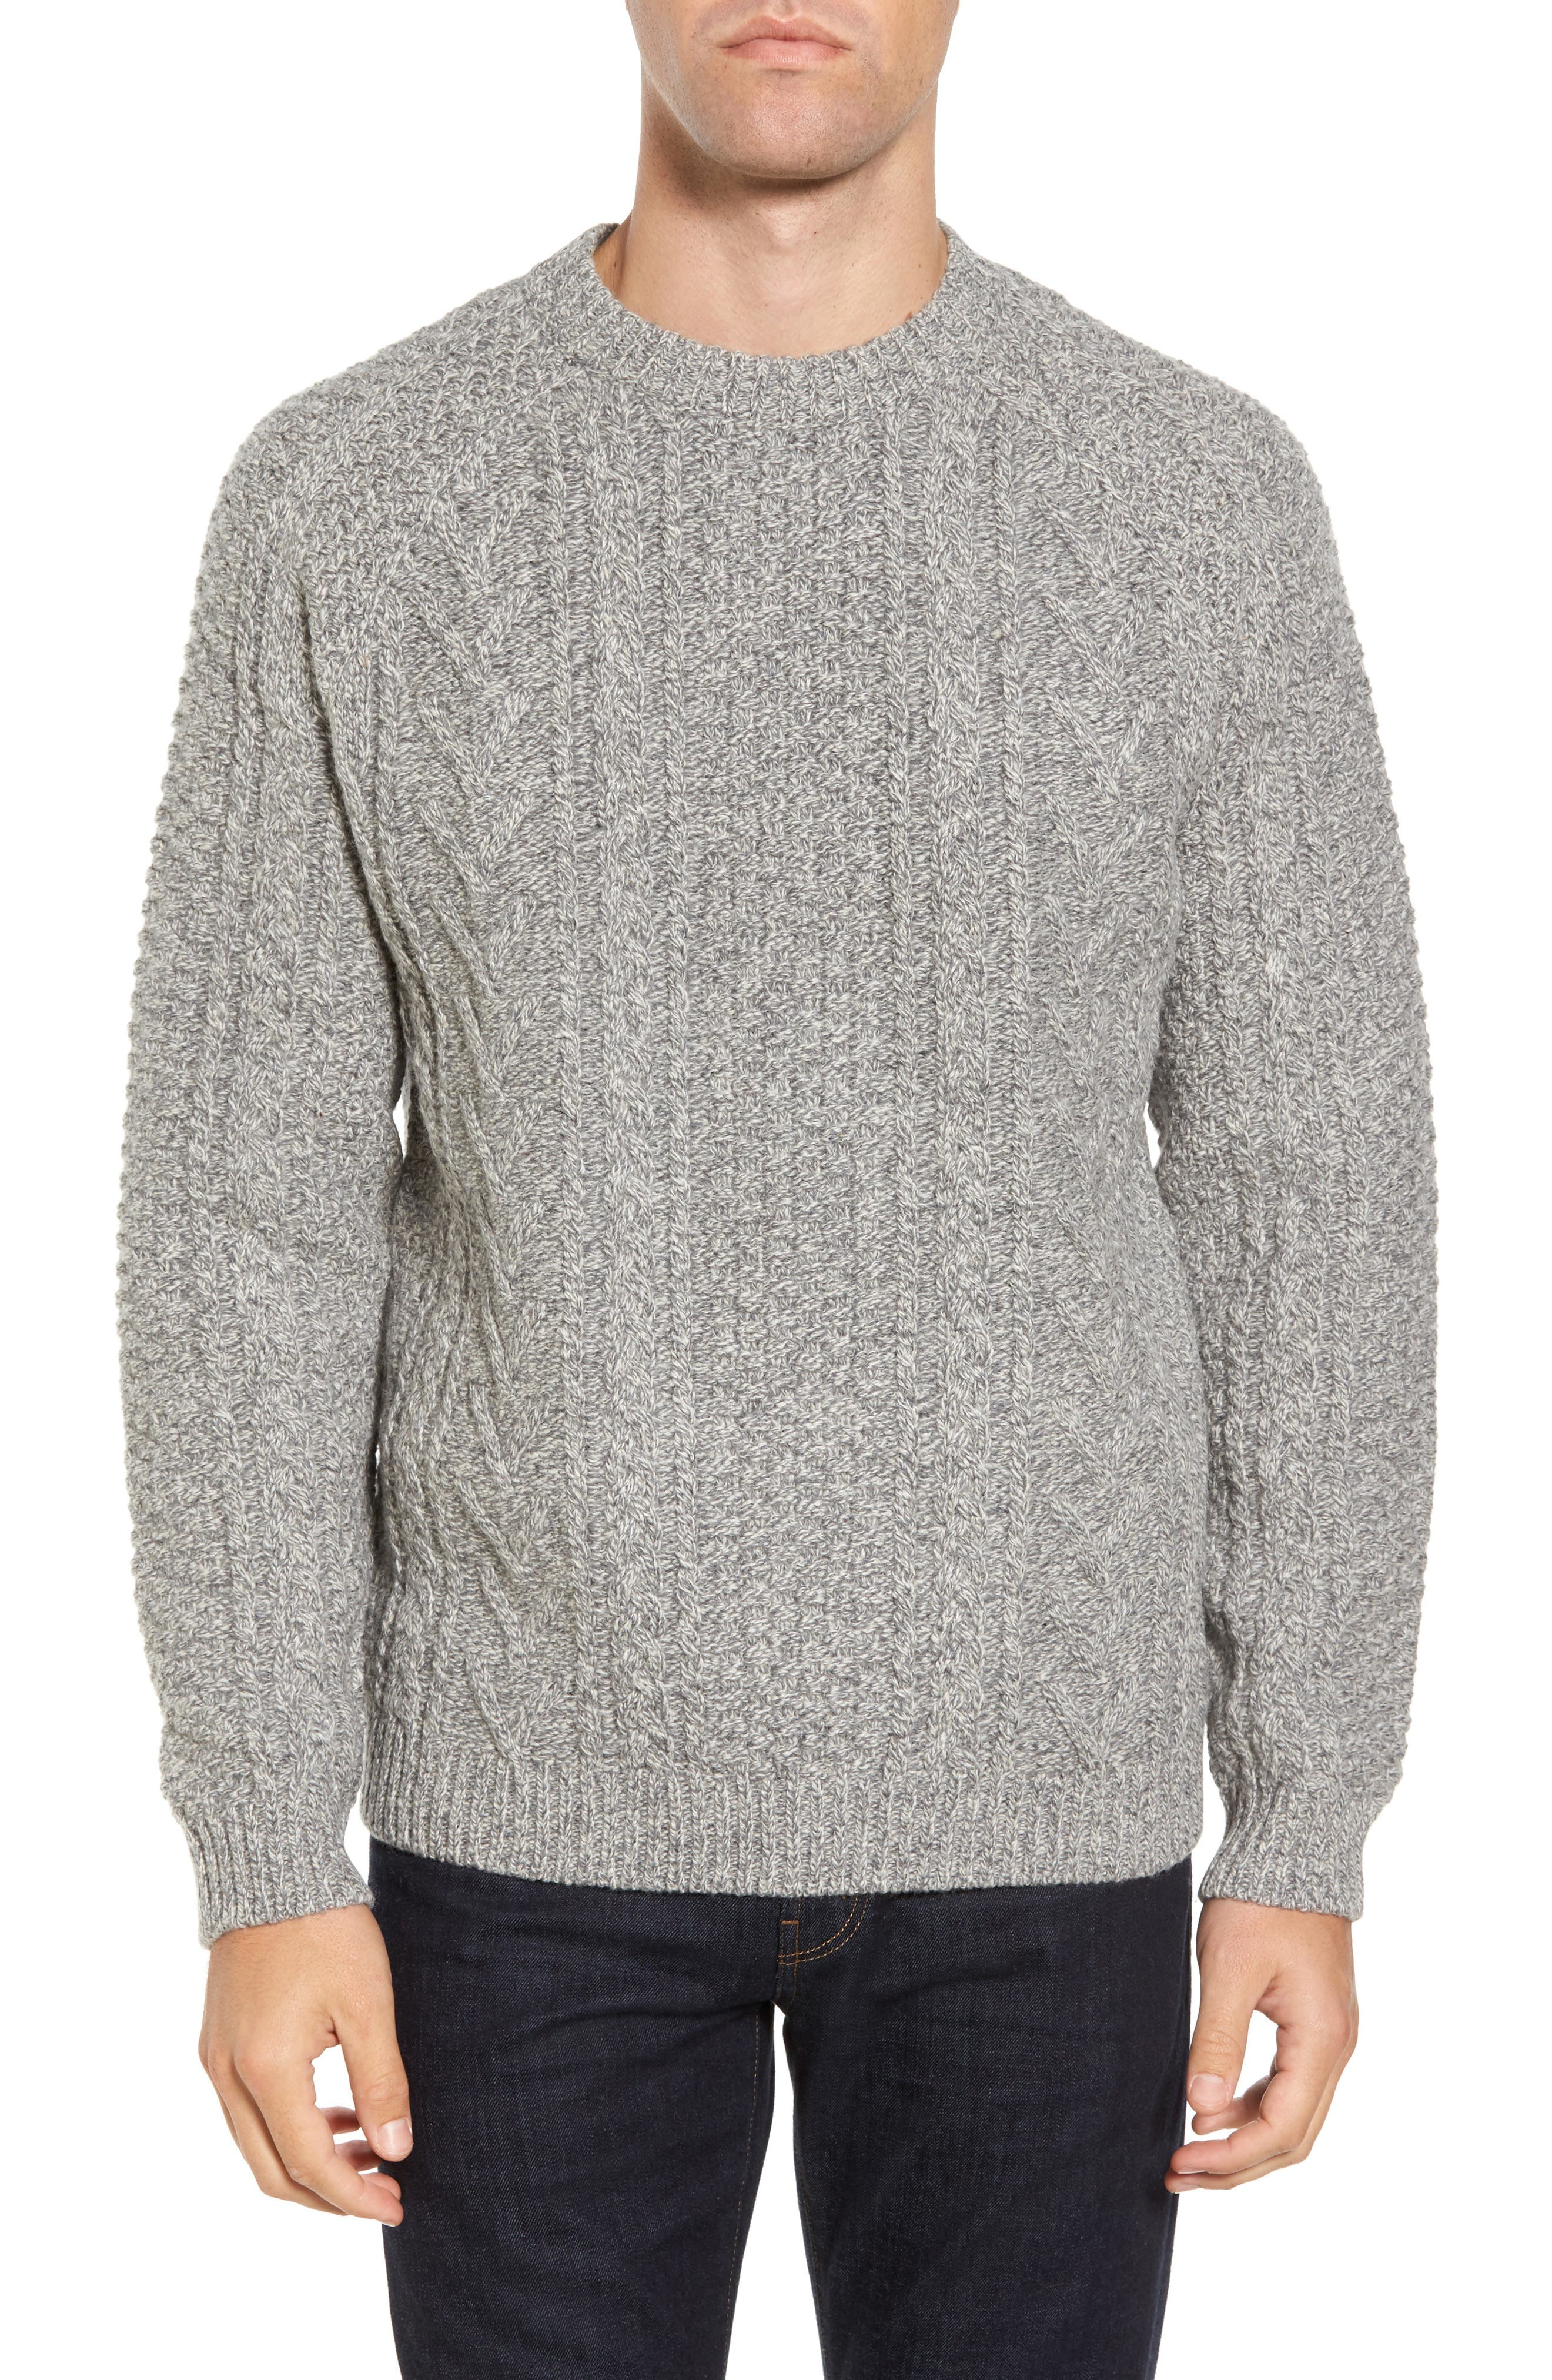 Main Image - Schott NYC Fisherman Knit Wool Blend Sweater